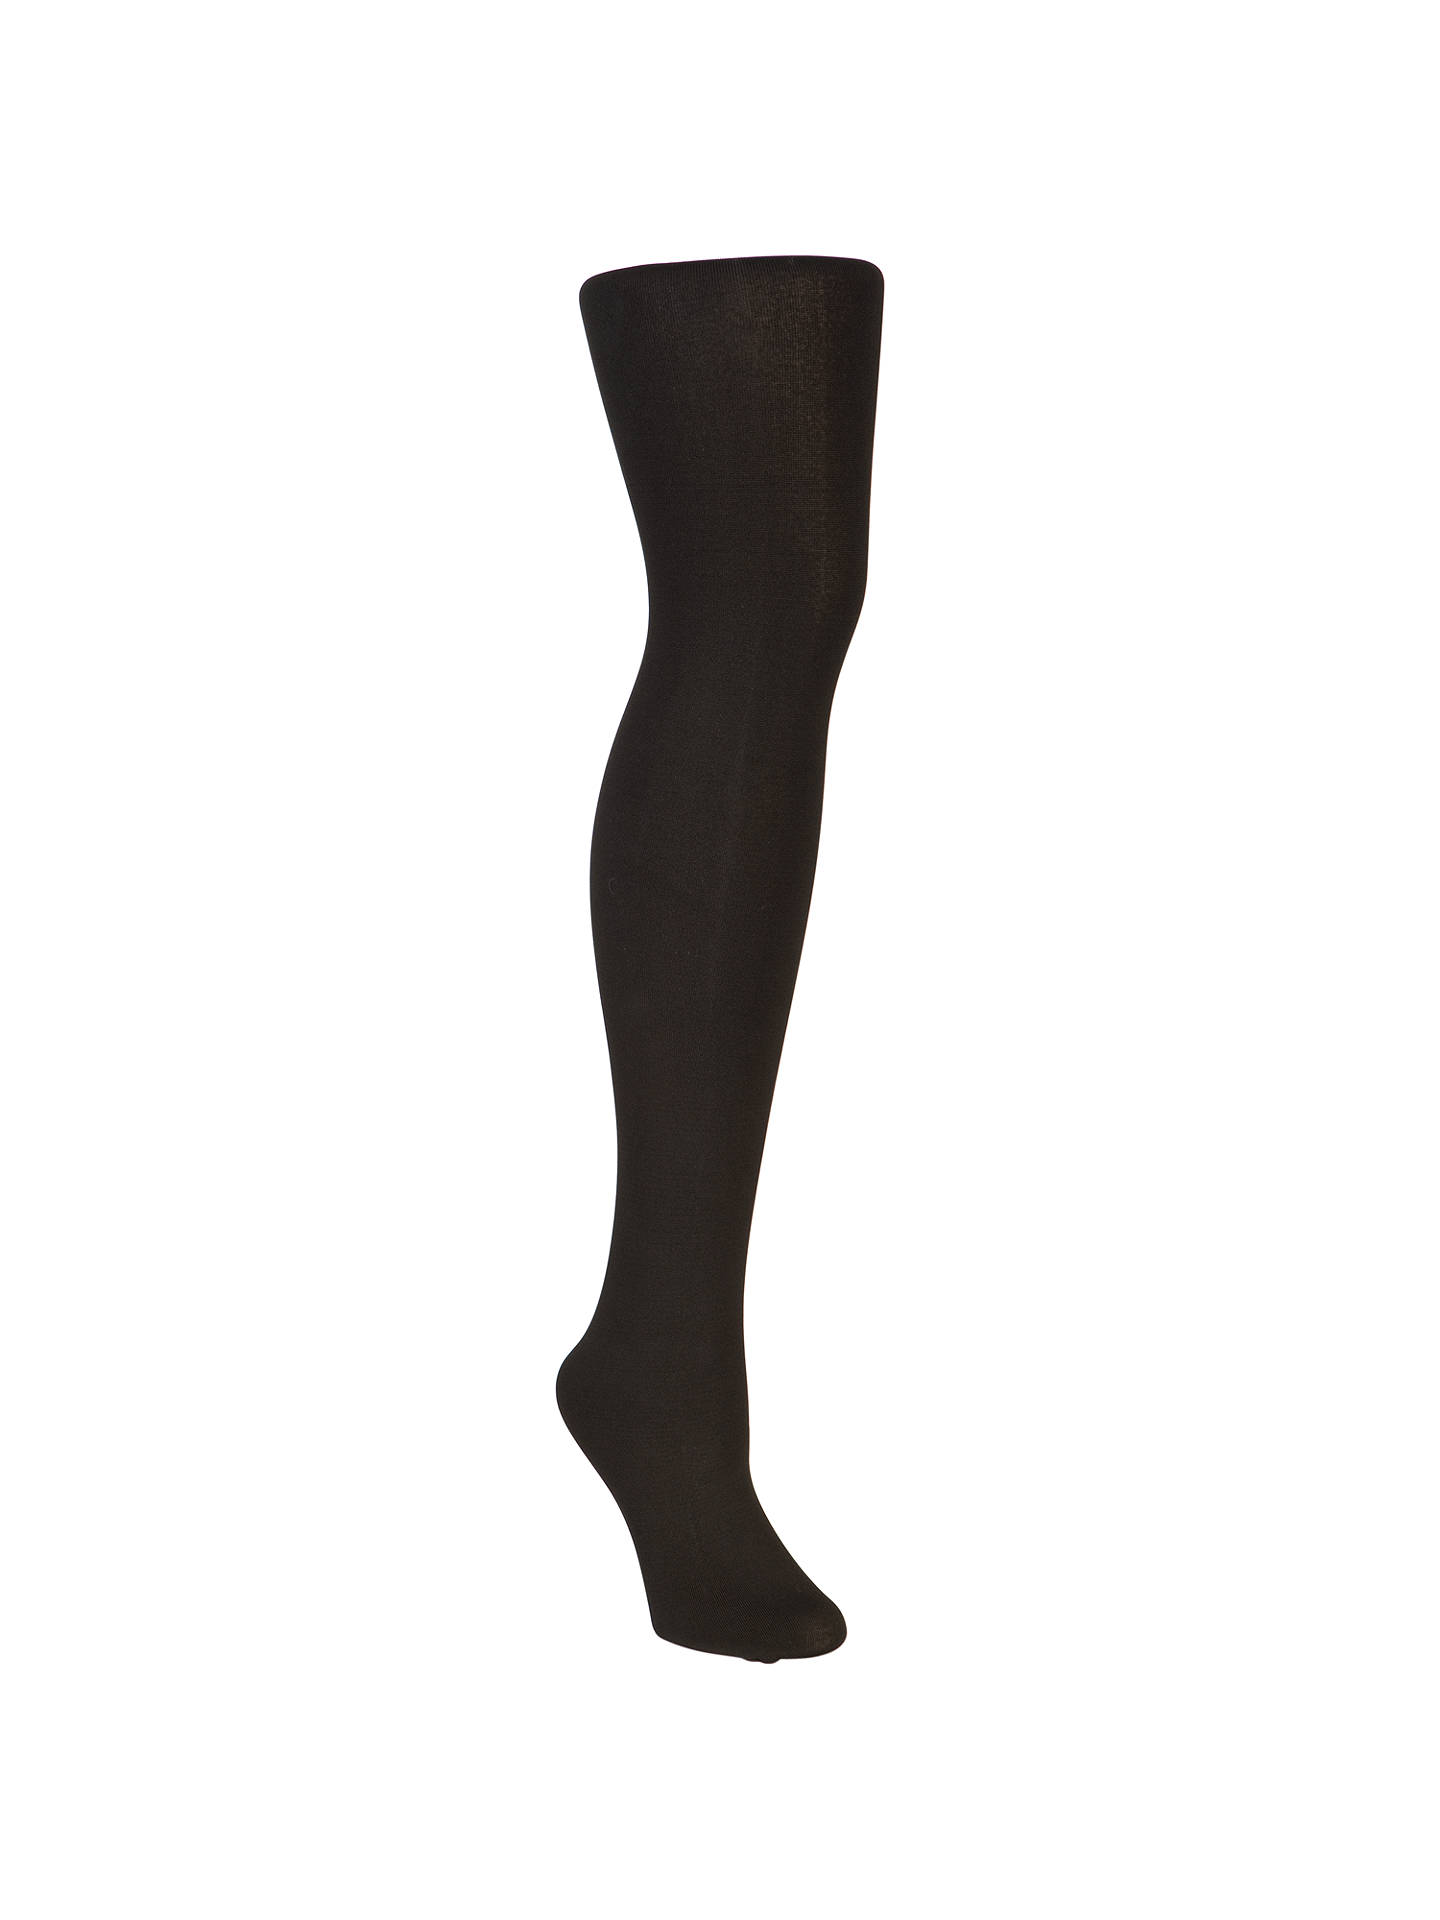 BuyJohn Lewis & Partners 150 Denier Polar Fleece Opaque Thermal Tights, Black, S-M Online at johnlewis.com